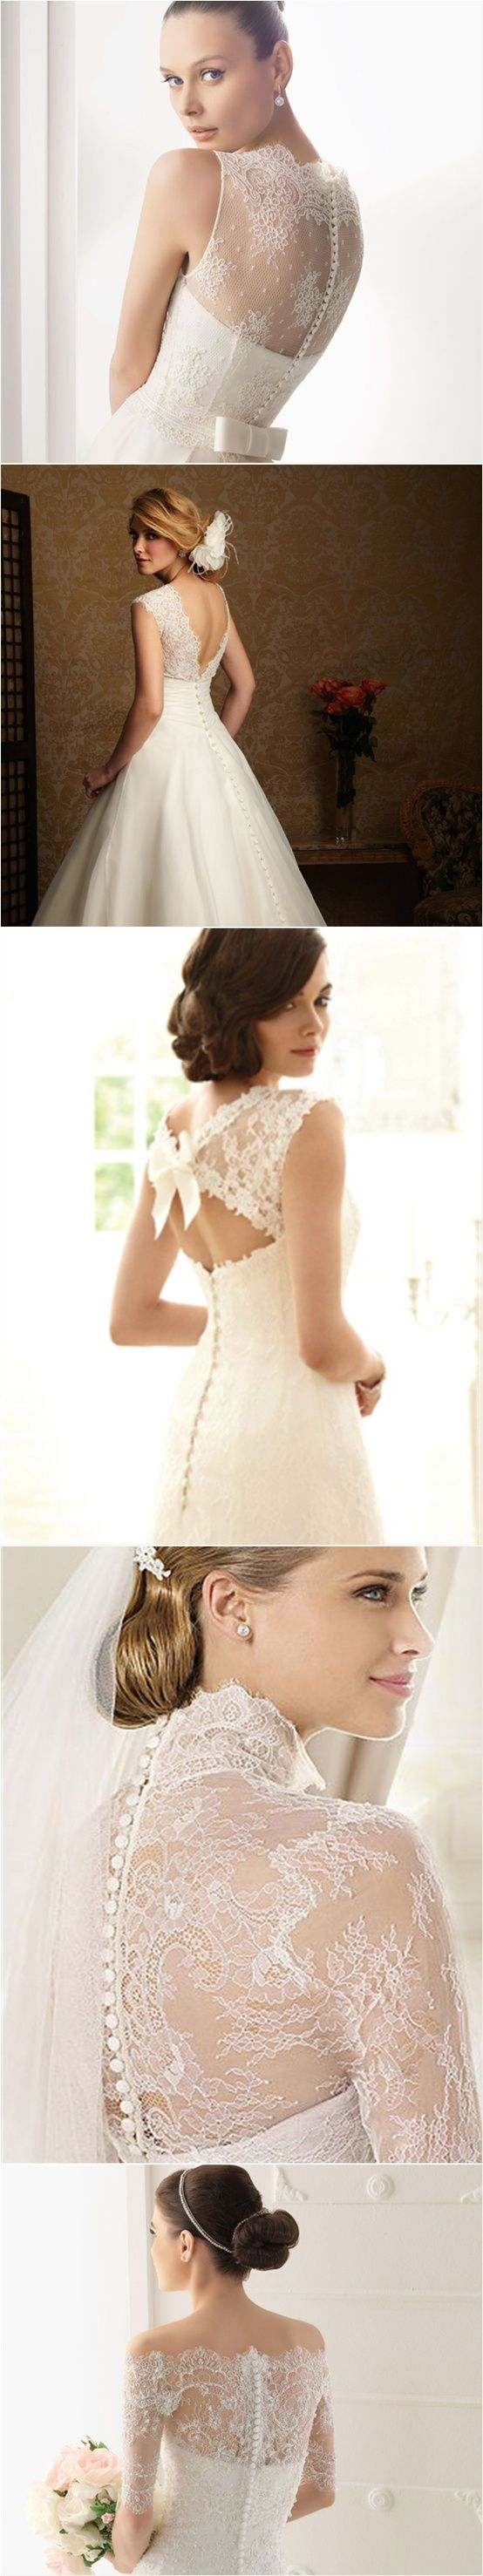 back: Lace Weddings, Lace Wedding Dresses, Gowns, Bows, Love Lace, Buttons, Lace Back Dresses, Lace Dresses, Back Details